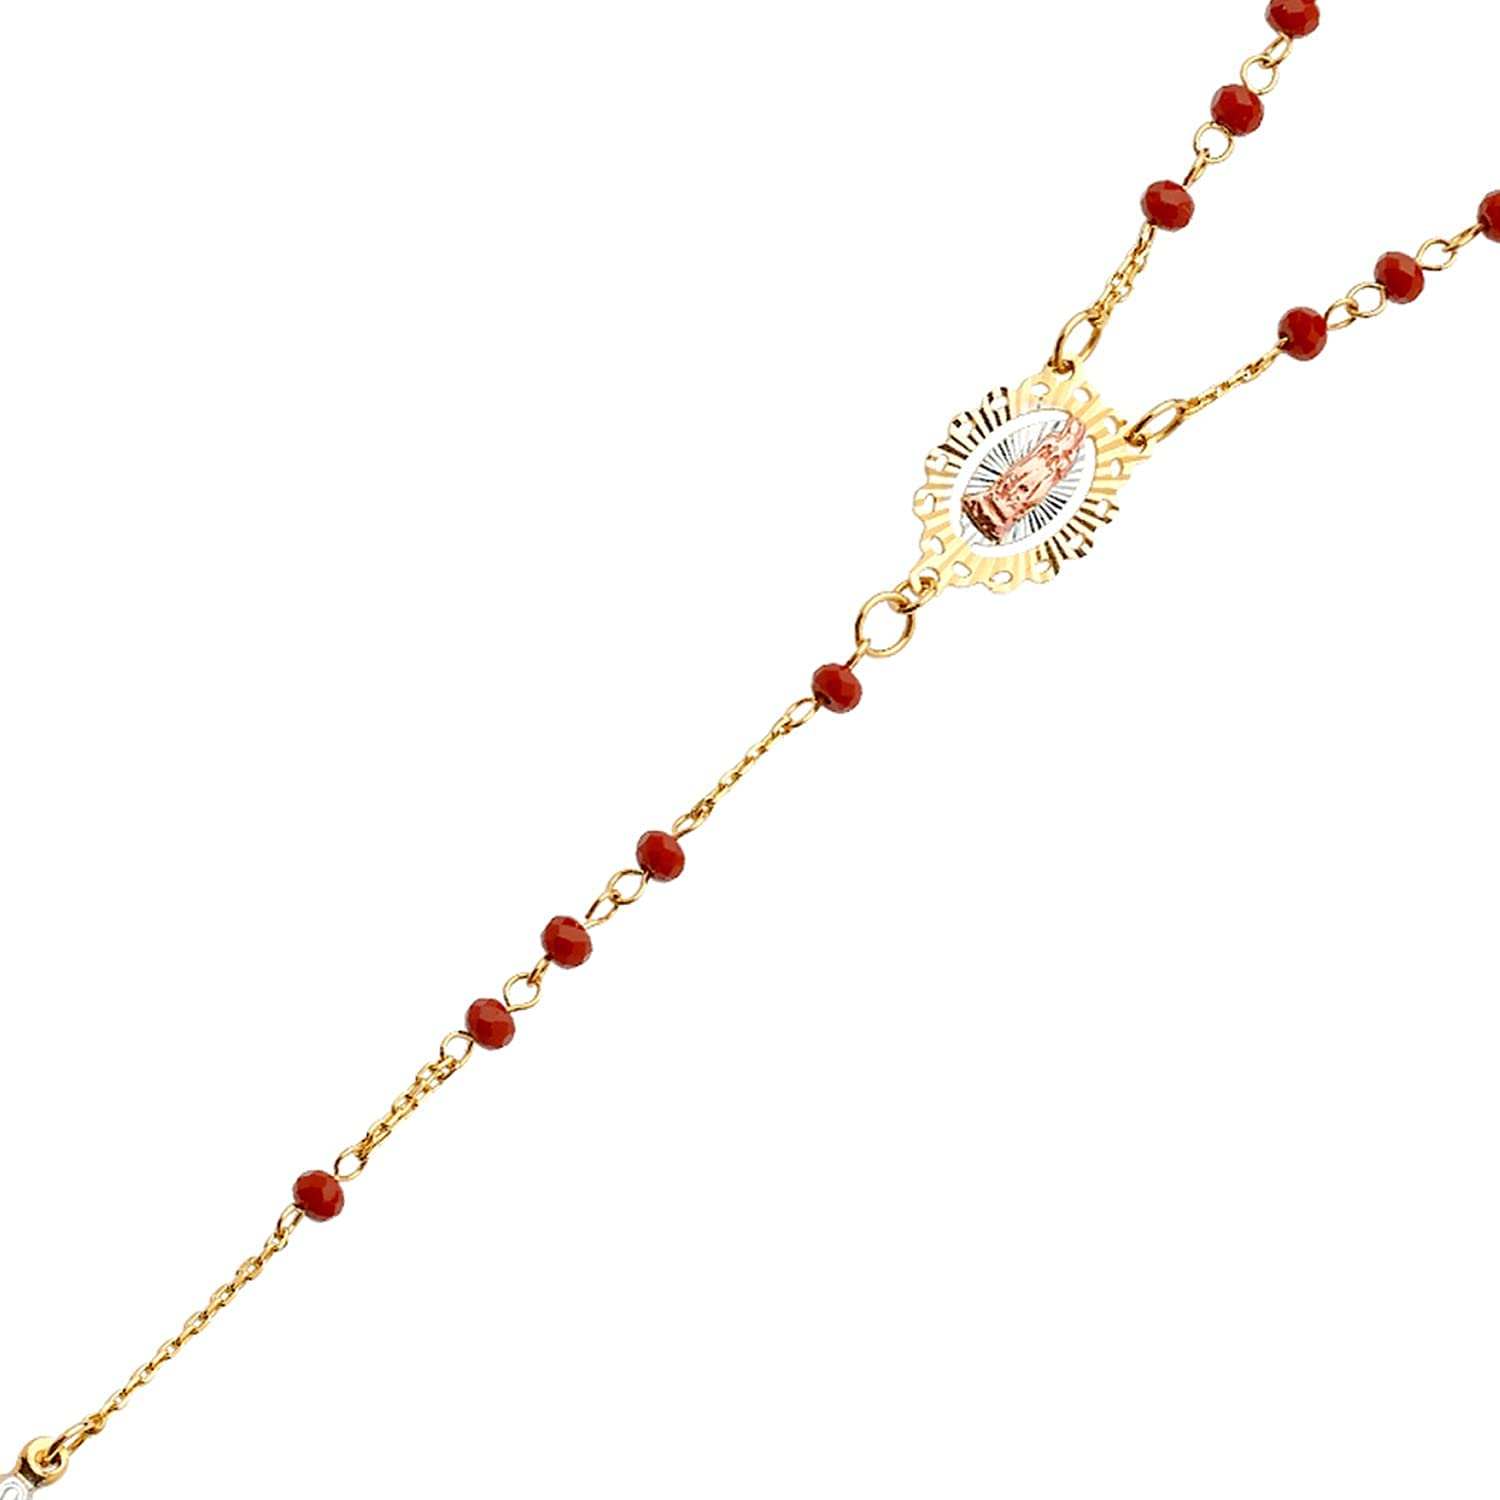 14K Gold Chain Necklace Tri Gem Sale item Rosary Neckla Color Stone Ranking TOP5